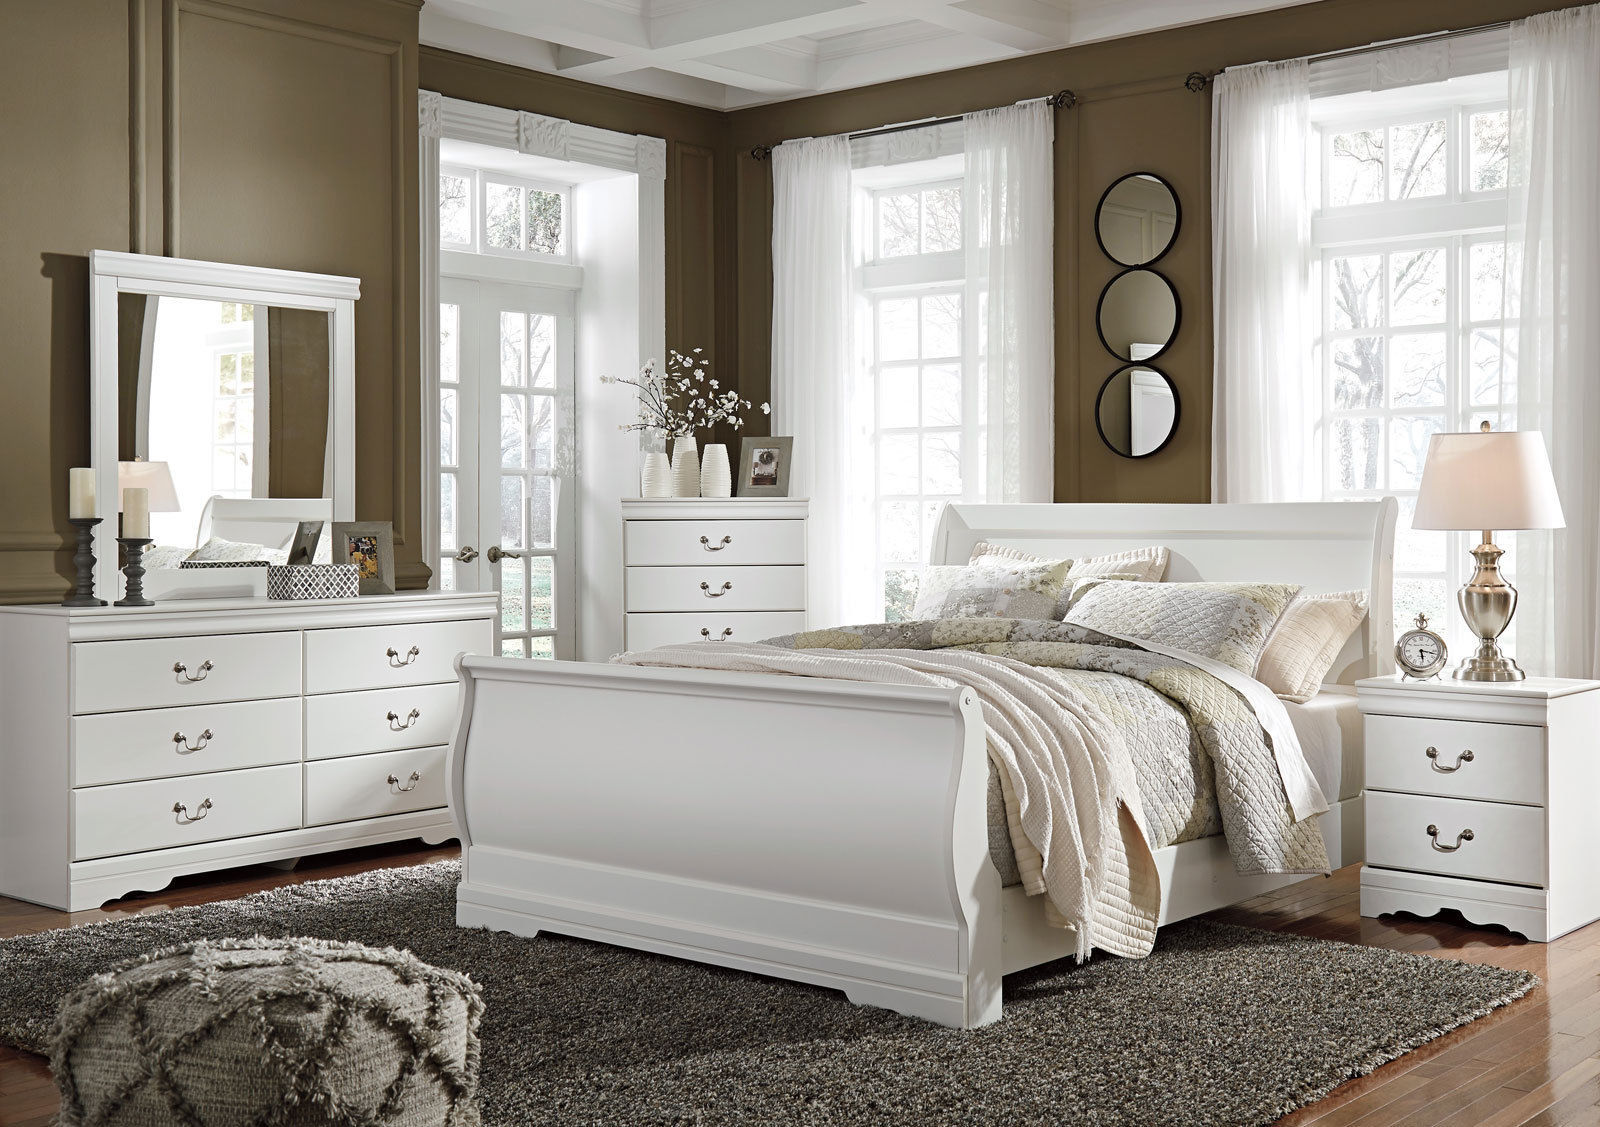 Donna traditional white 5pcs new bedroom set furniture w - Traditional white bedroom furniture ...